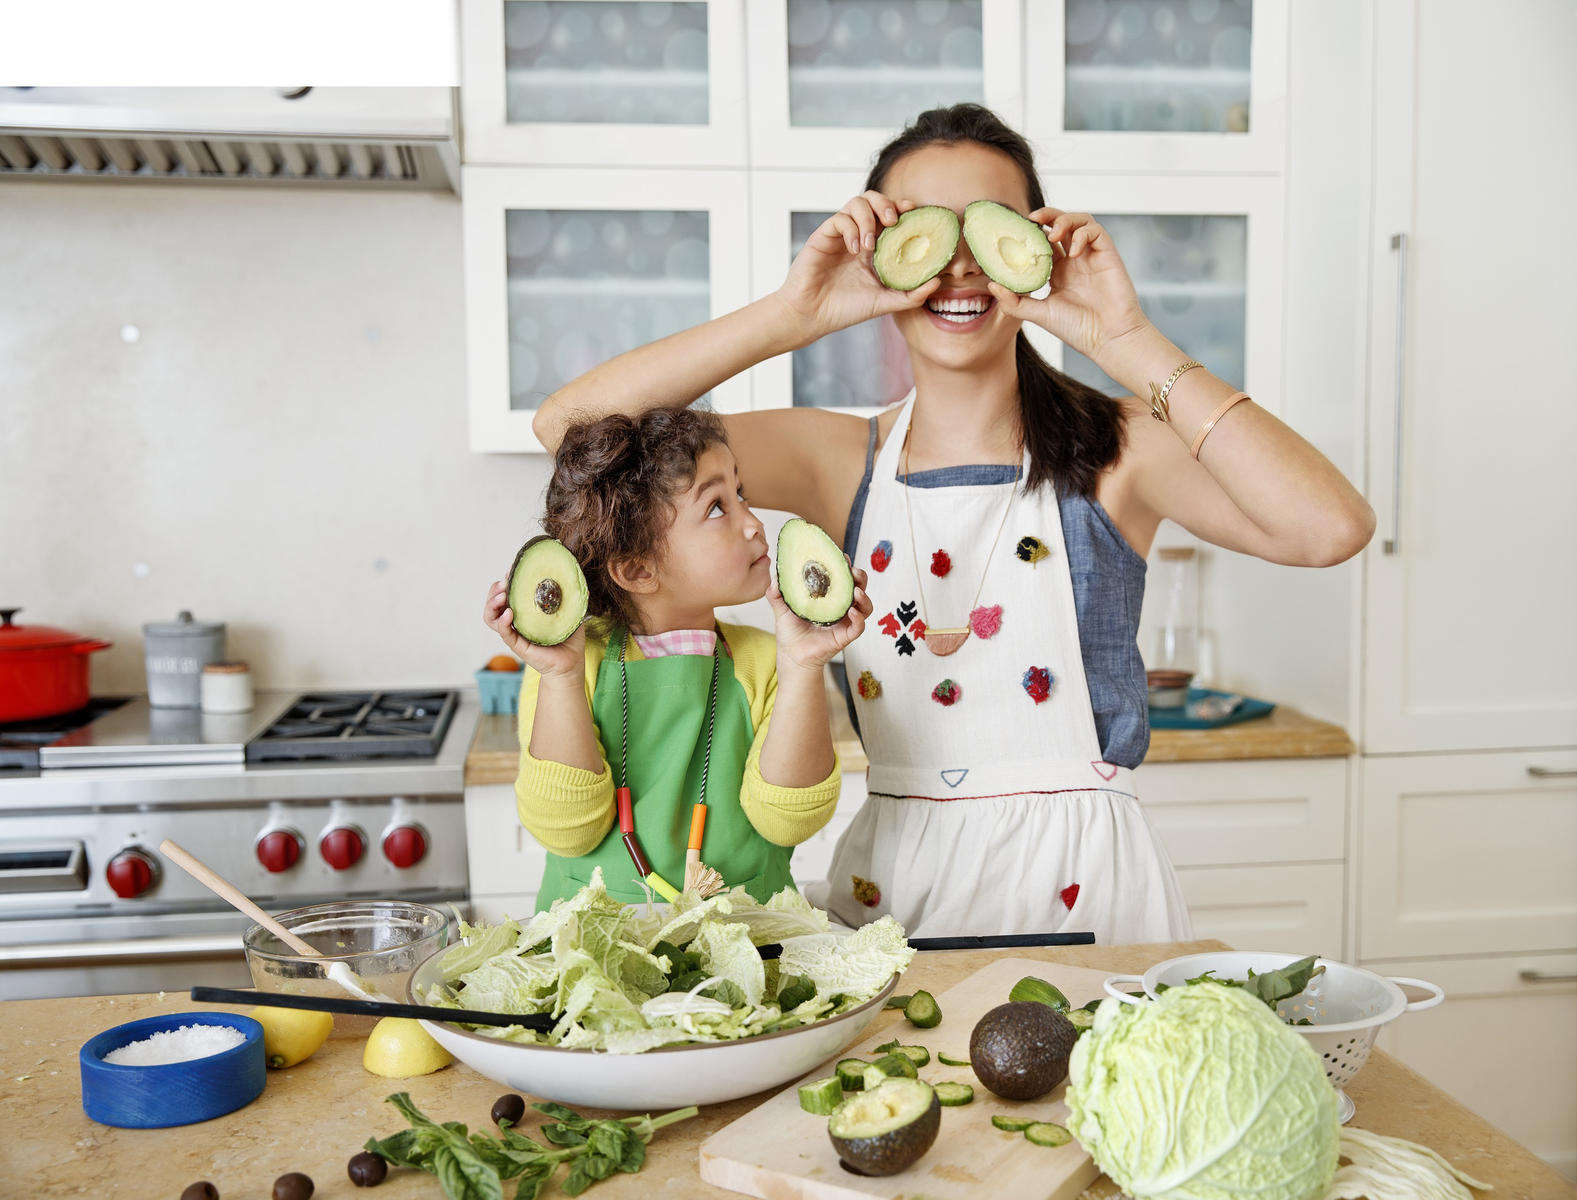 8 of the Best Meal-Prep Hacks From Parents, Foodies, and Cooking Pros